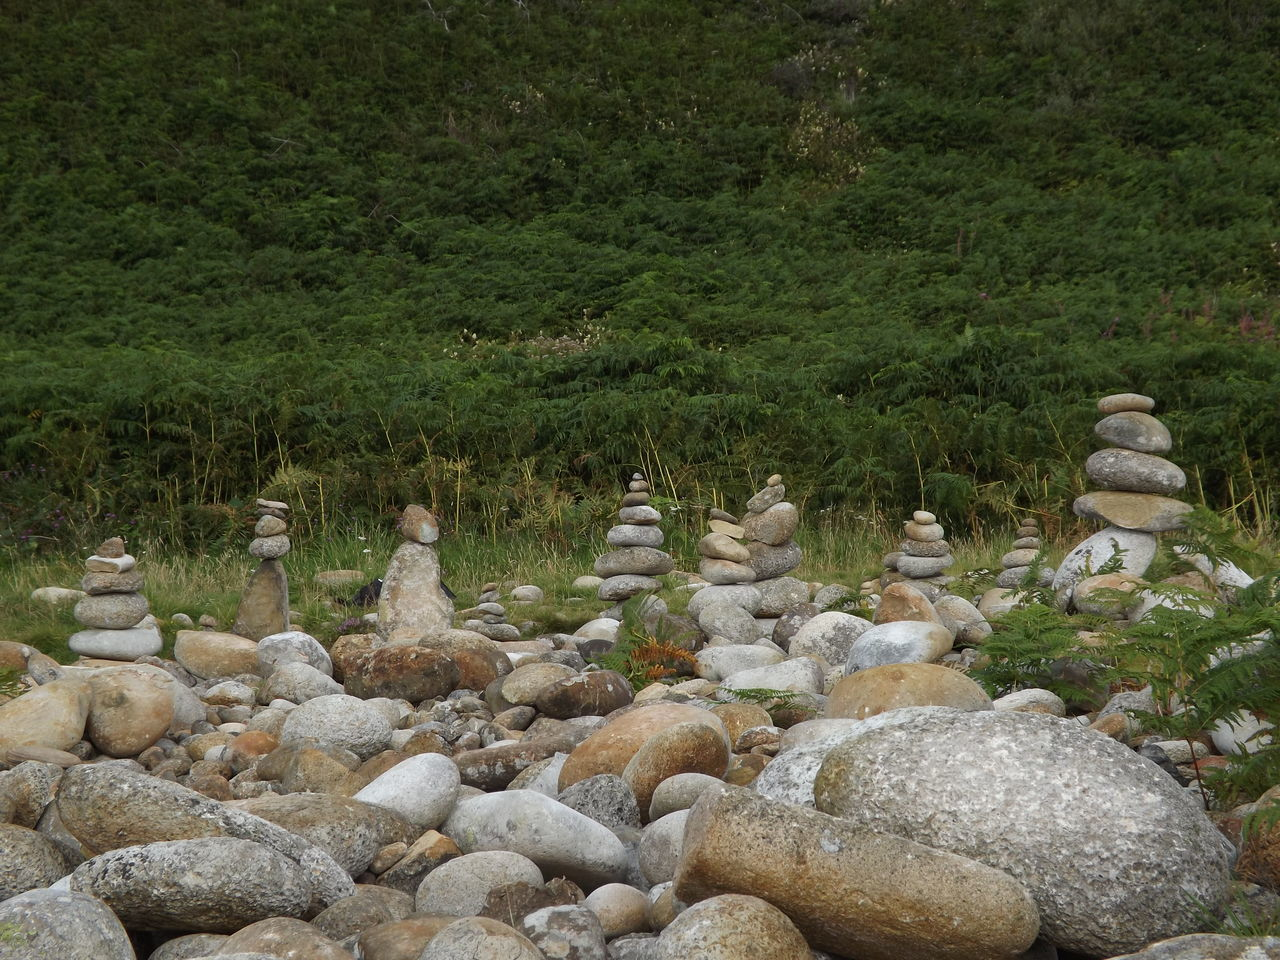 Beauty In Nature Day Green Isle Of Arran  Moment Nature No People Outdoors Pattern Relax Relaxing Scotland Stone Tower Stones Stones And Pebbles